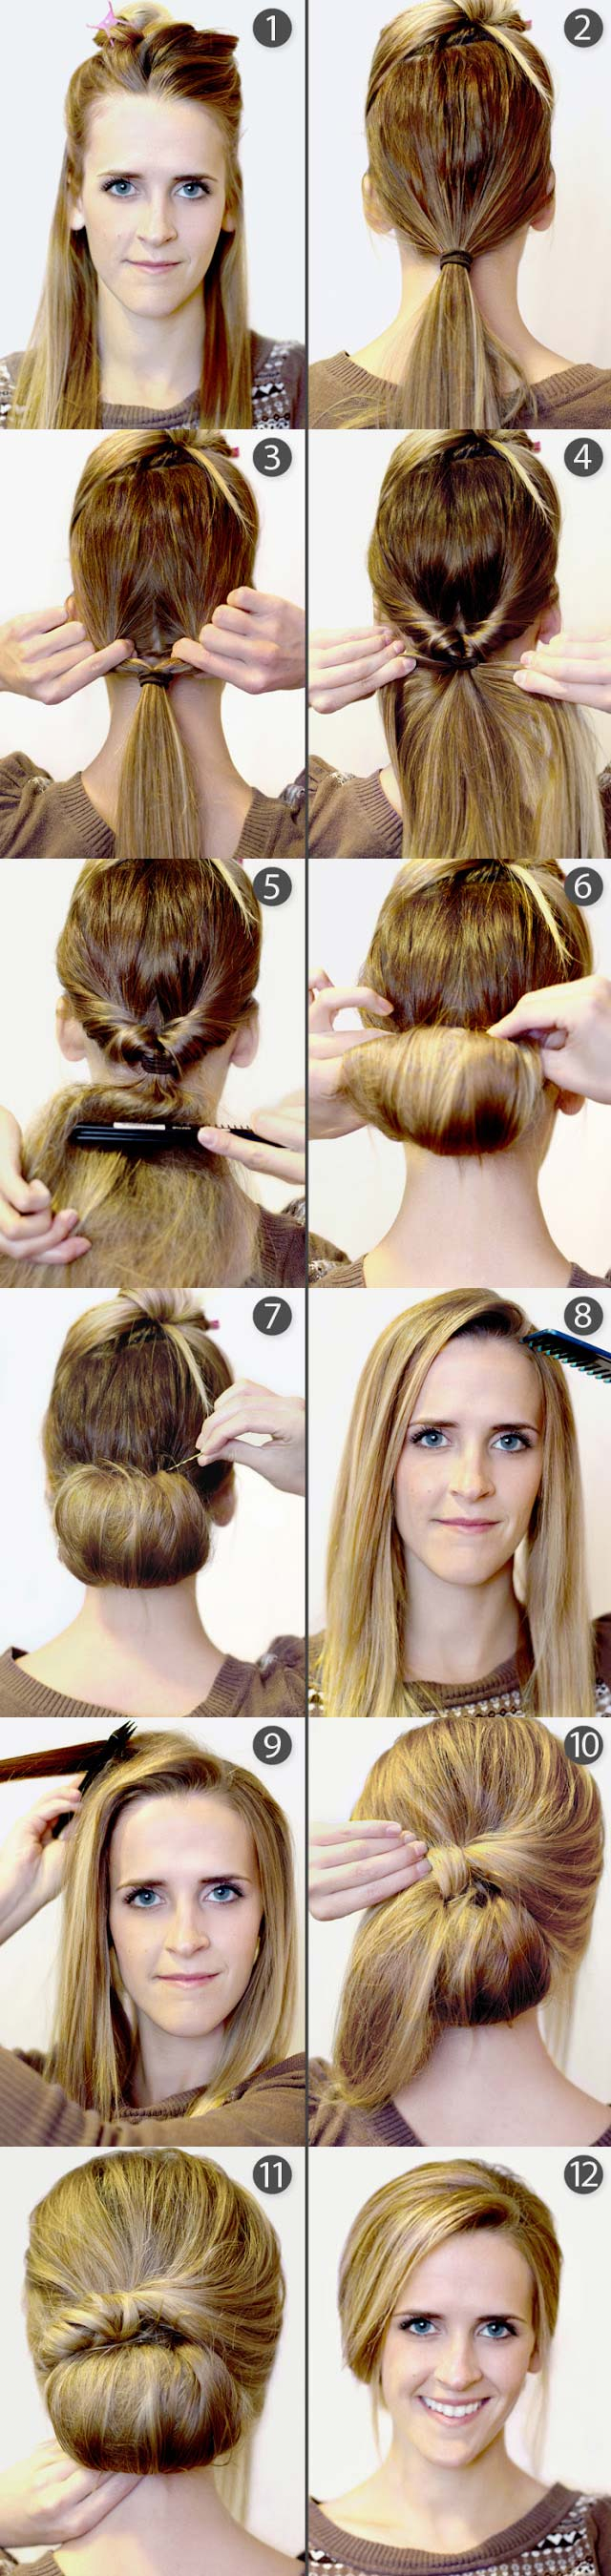 Hairstyles For Short Hair Diy : Pretty DIY Hairstyles With Step-by-Step Tutorials - Pretty Designs